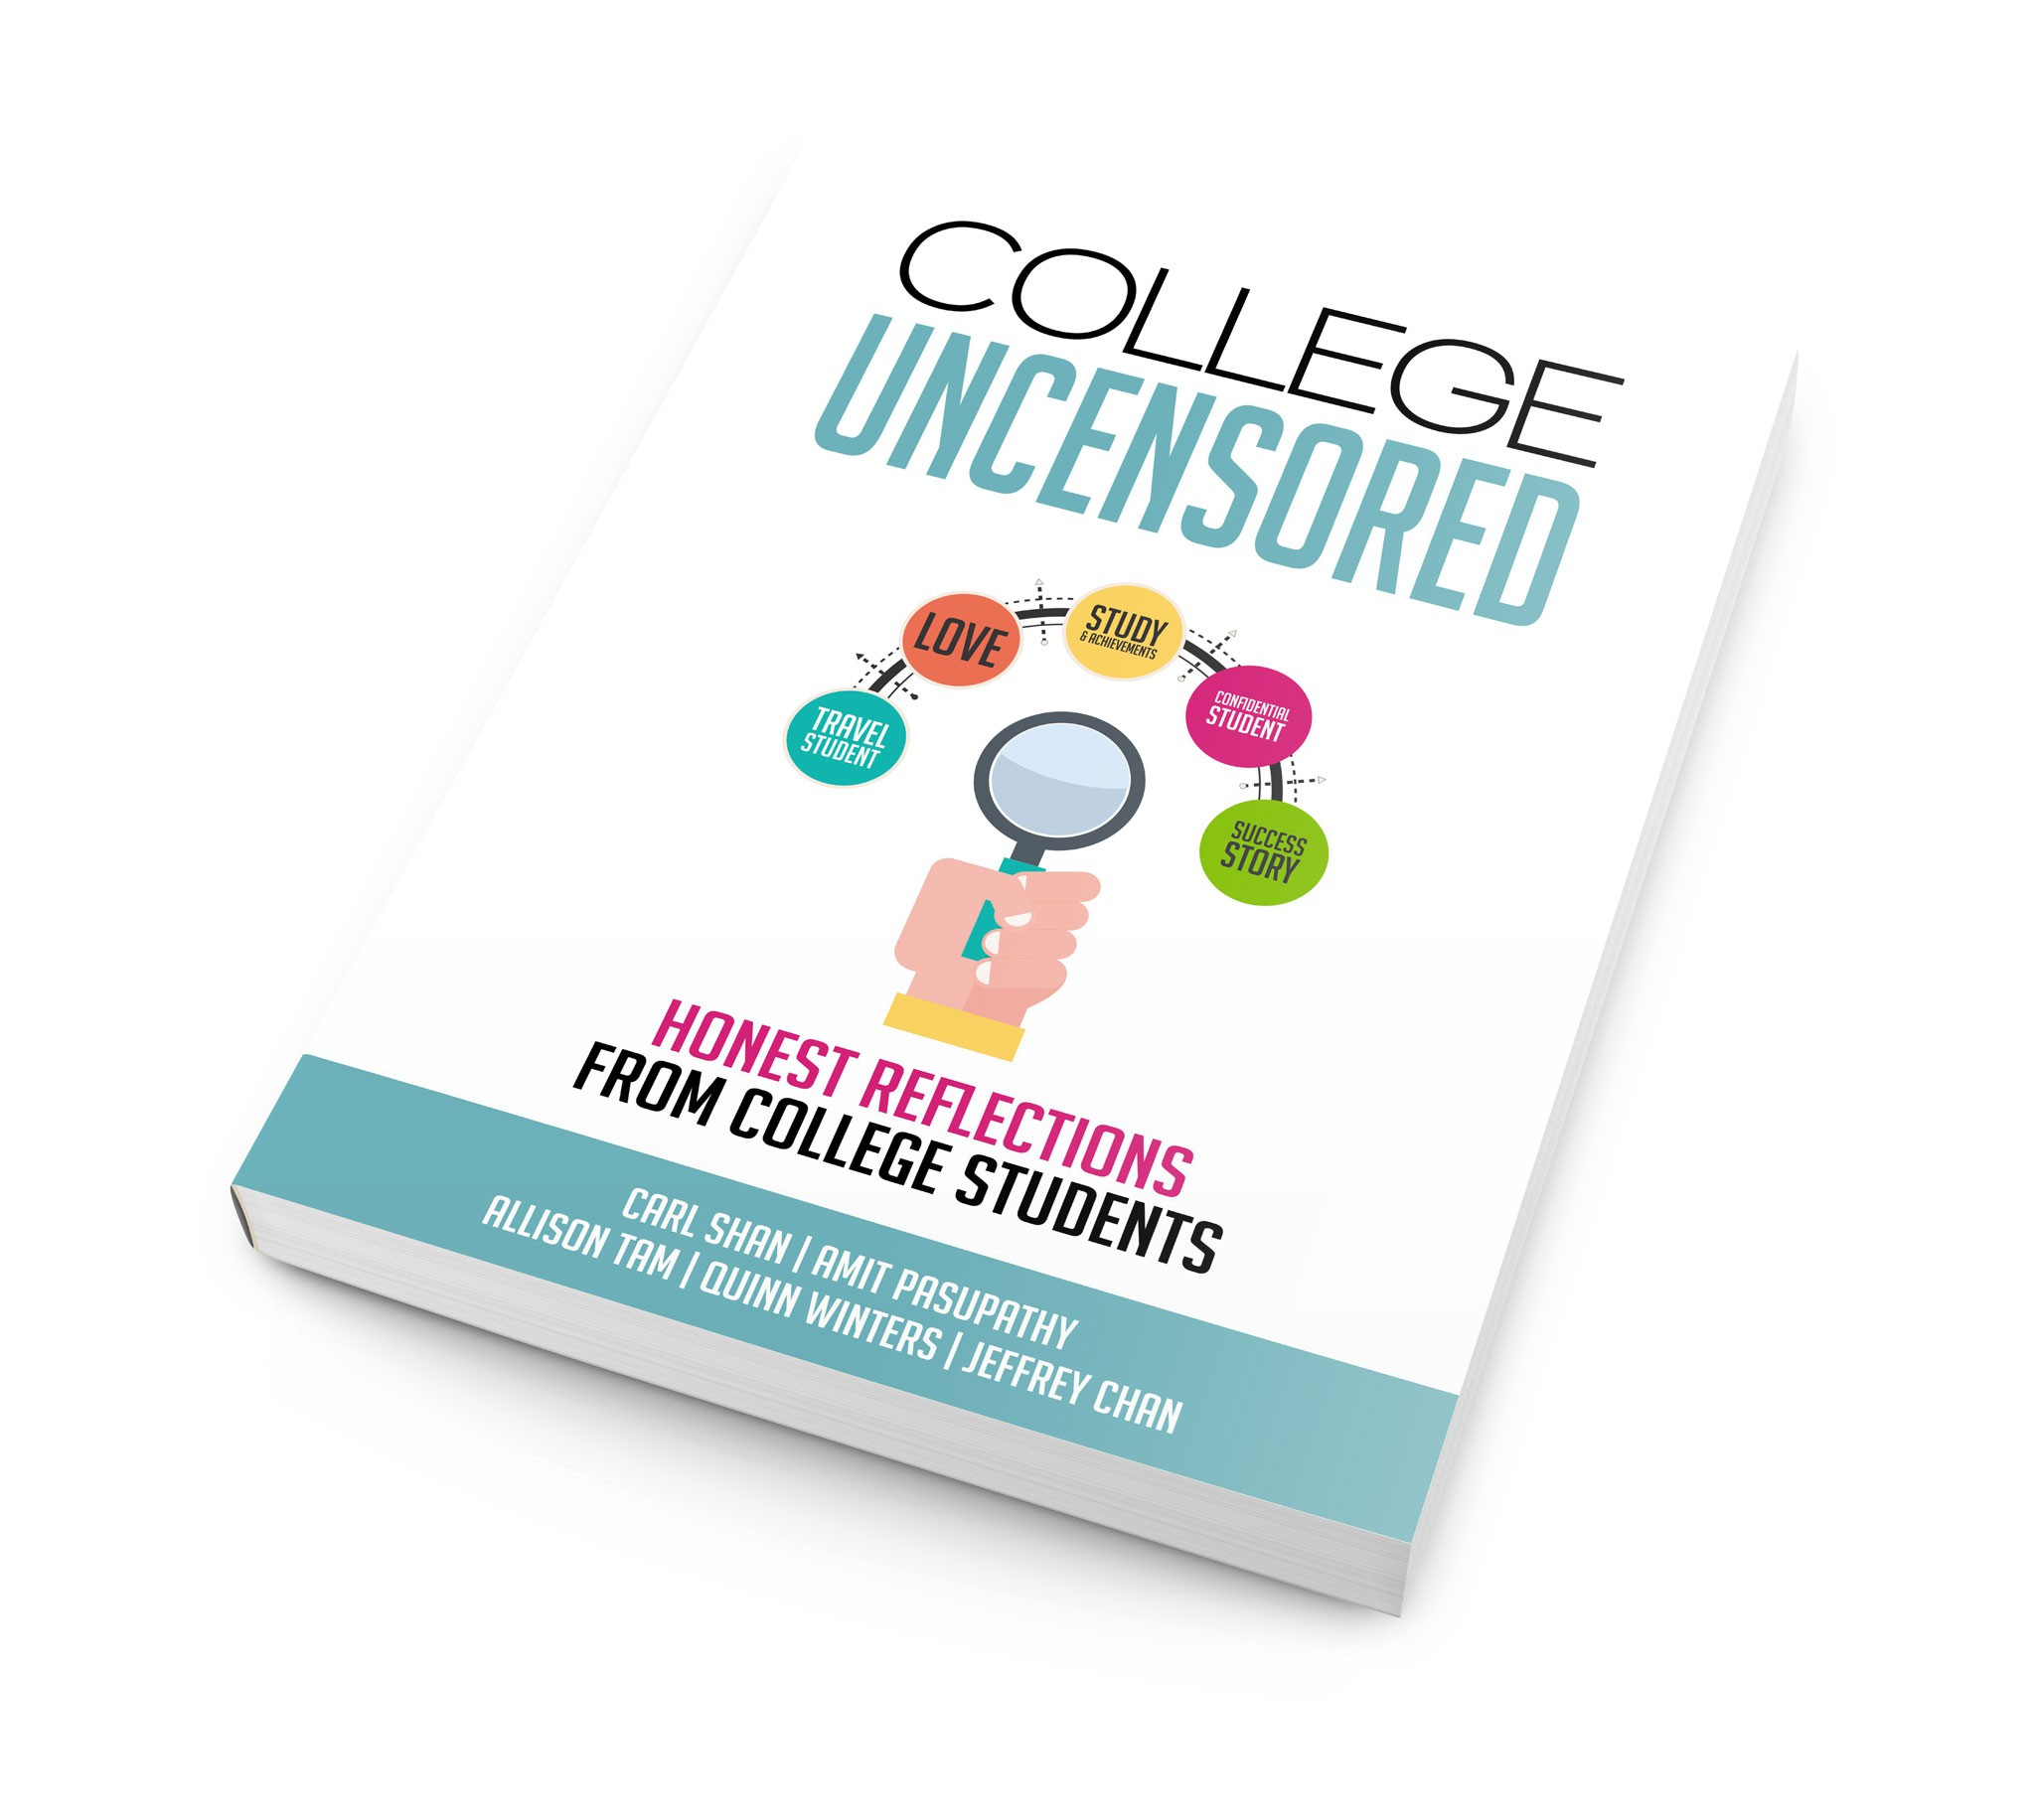 Designing the front of a book cover on US colleges